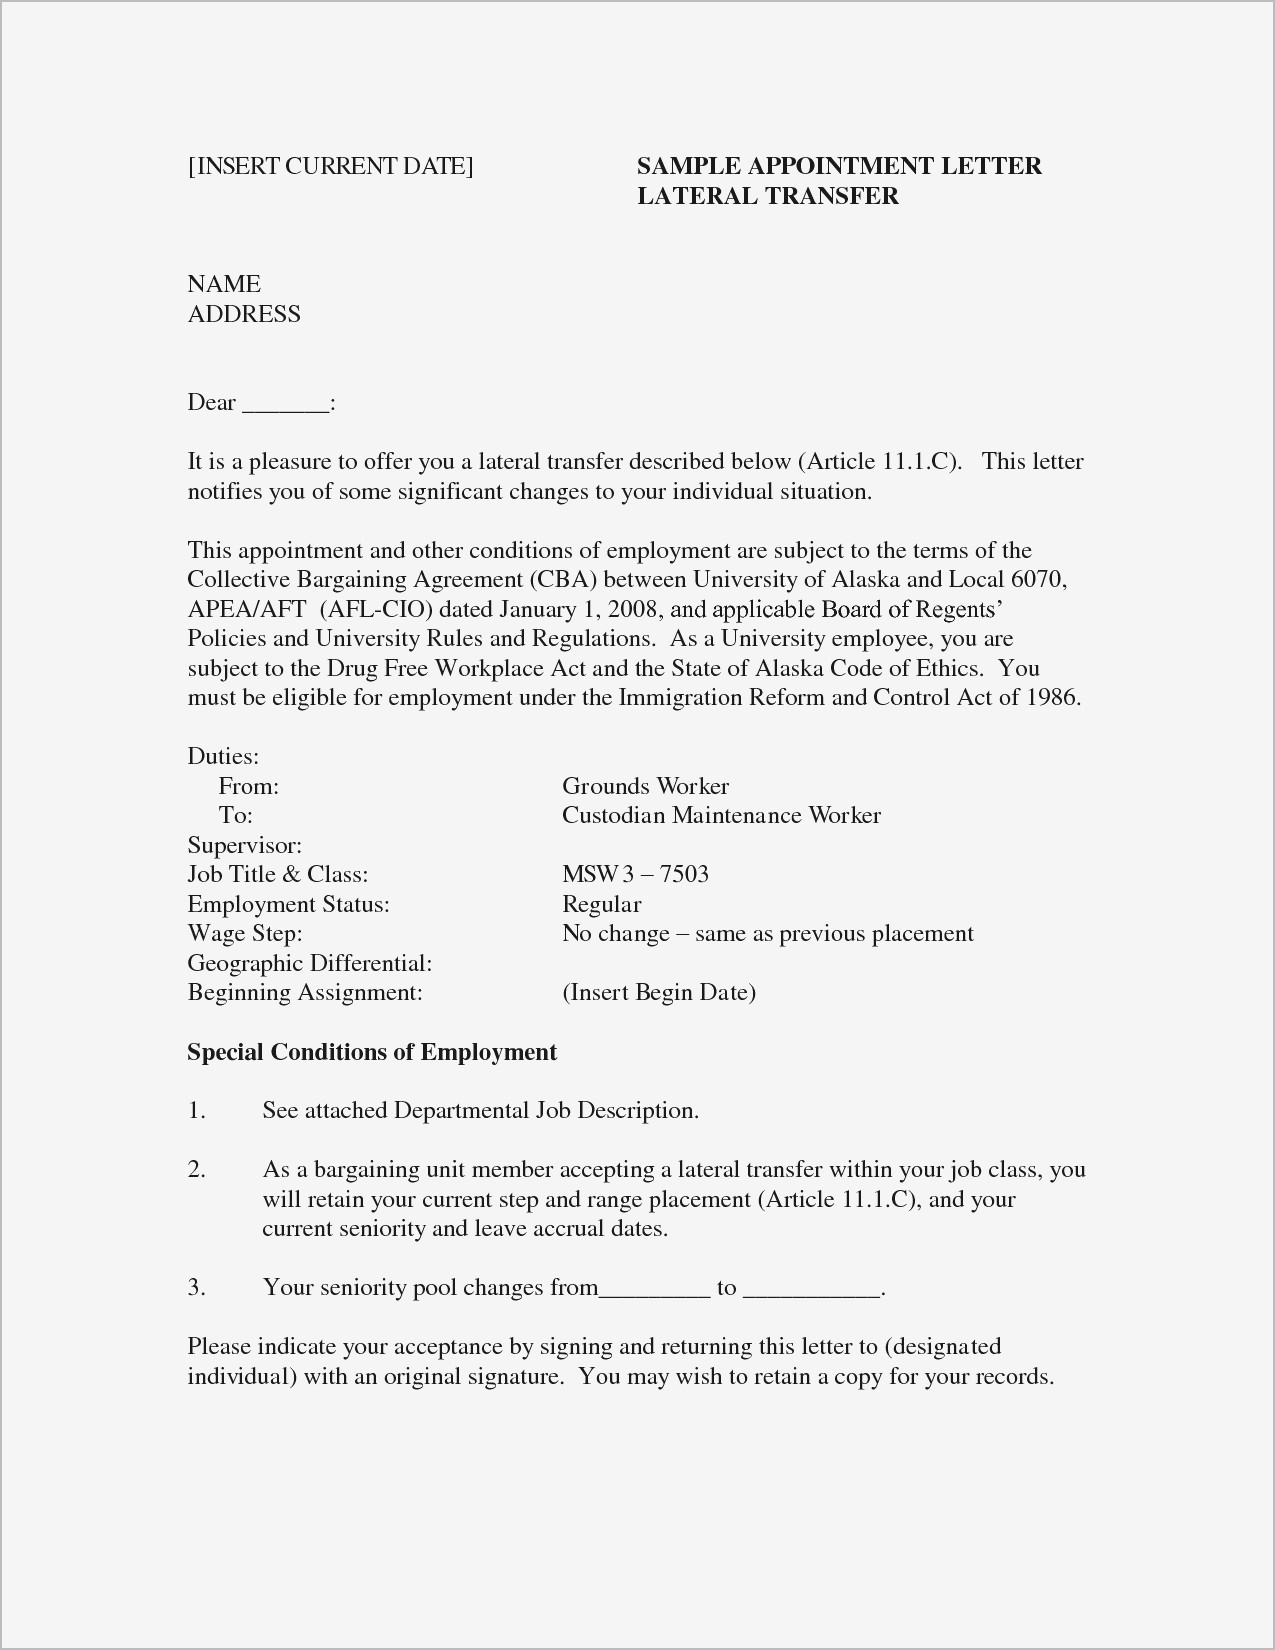 Prayer Letter Template Download - Sample Job Fer Letter Template Collection